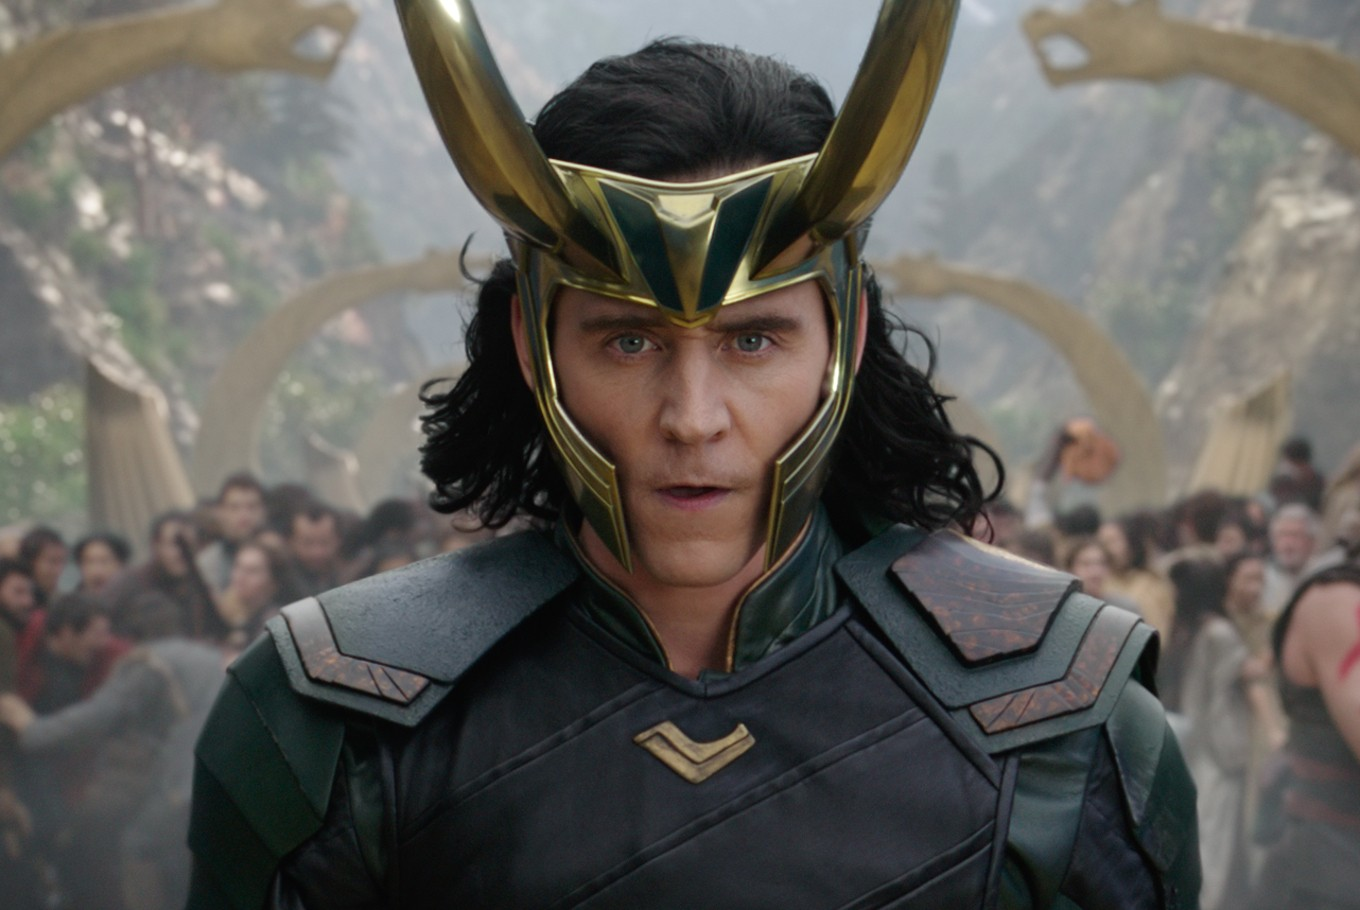 Disney makes history as 'Thor' pushes takings to US$5 billion